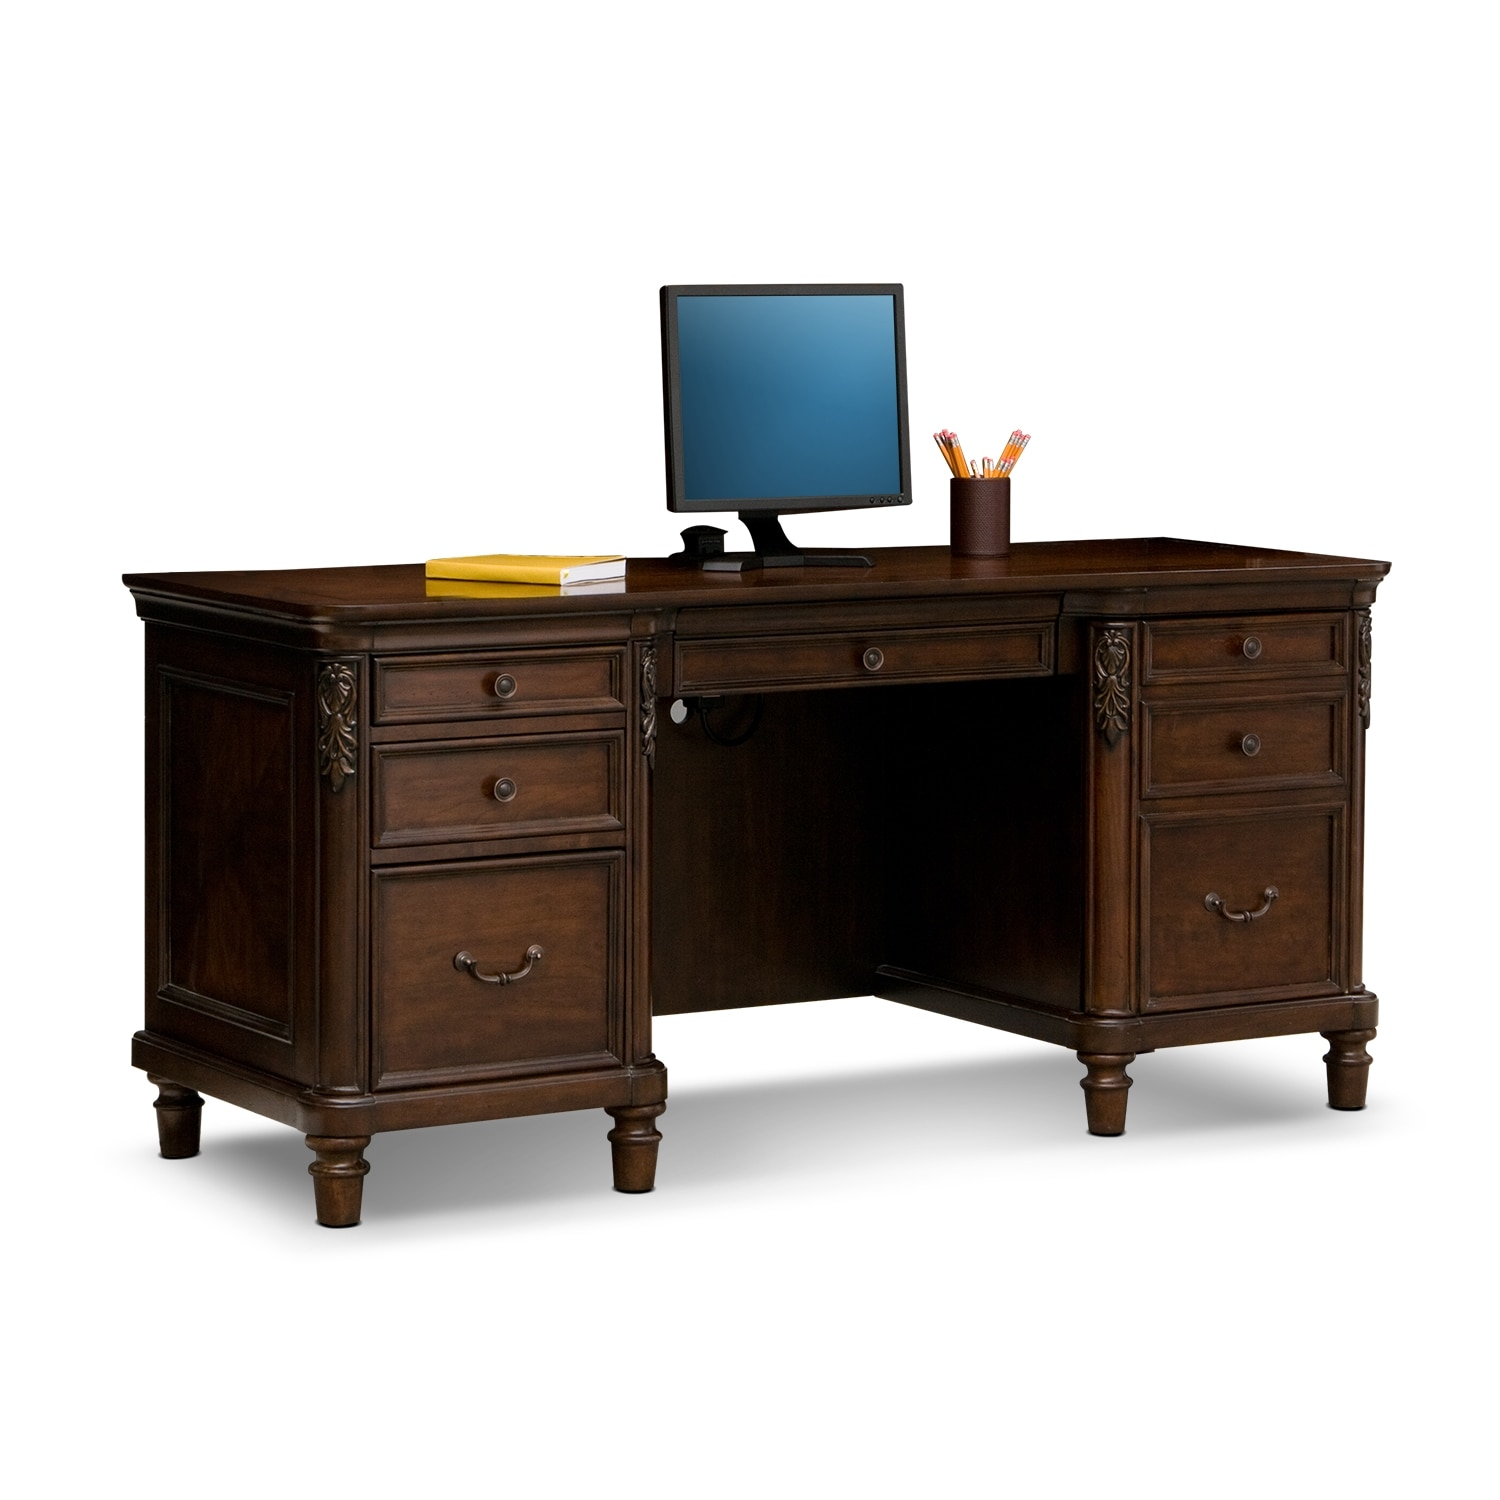 Merveilleux ... Home Office Furniture   Ashland Credenza Desk   Cherry